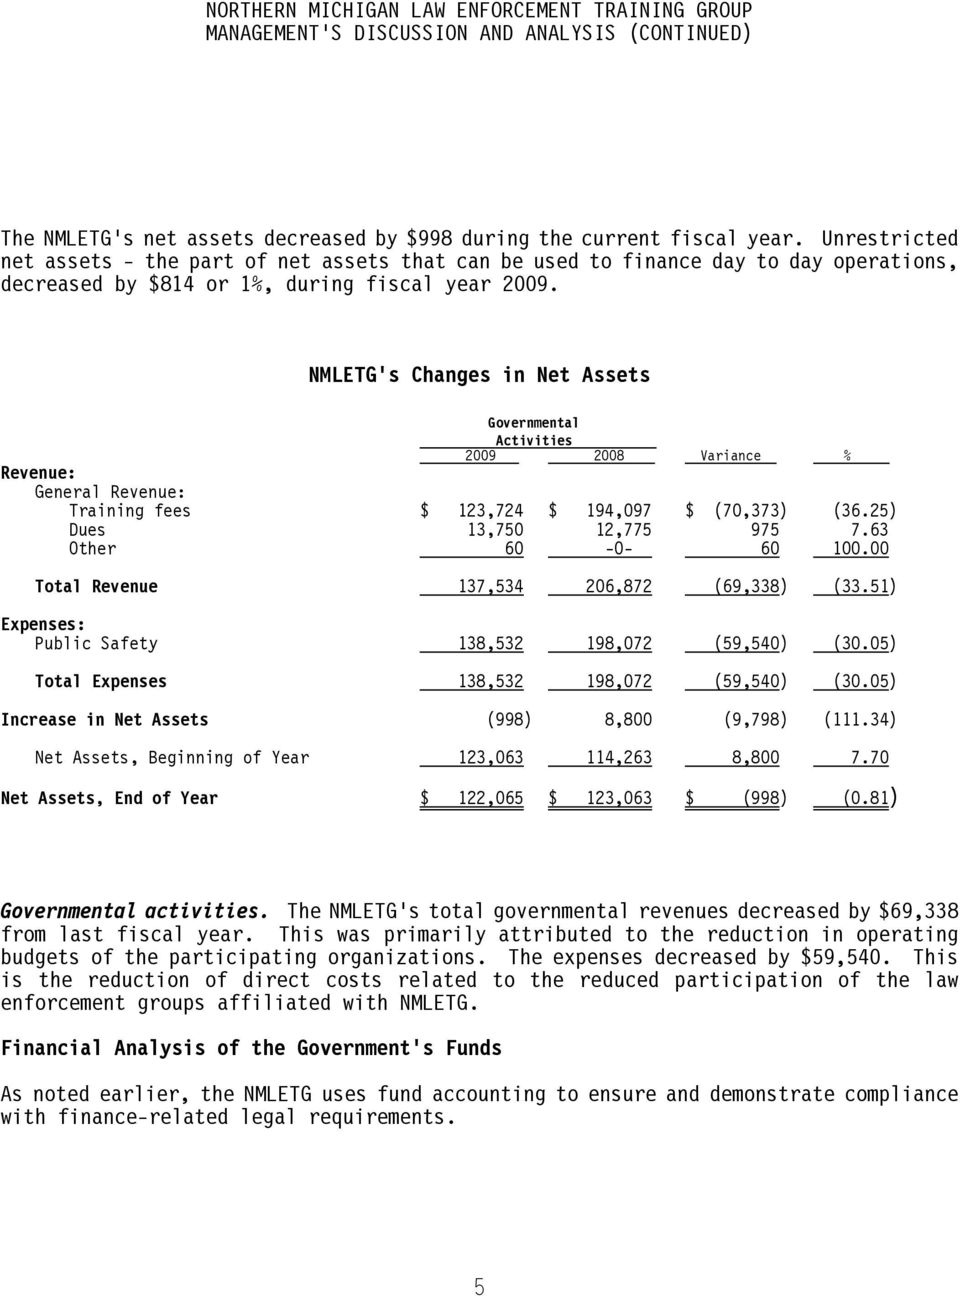 NMLETG s Changes in Net Assets Governmental Activities Revenue: 2009 2008 Variance % General Revenue: Training fees $ 123,724 $ 194,097 $ (70,373) (36.25) Dues 13,750 12,775 975 7.